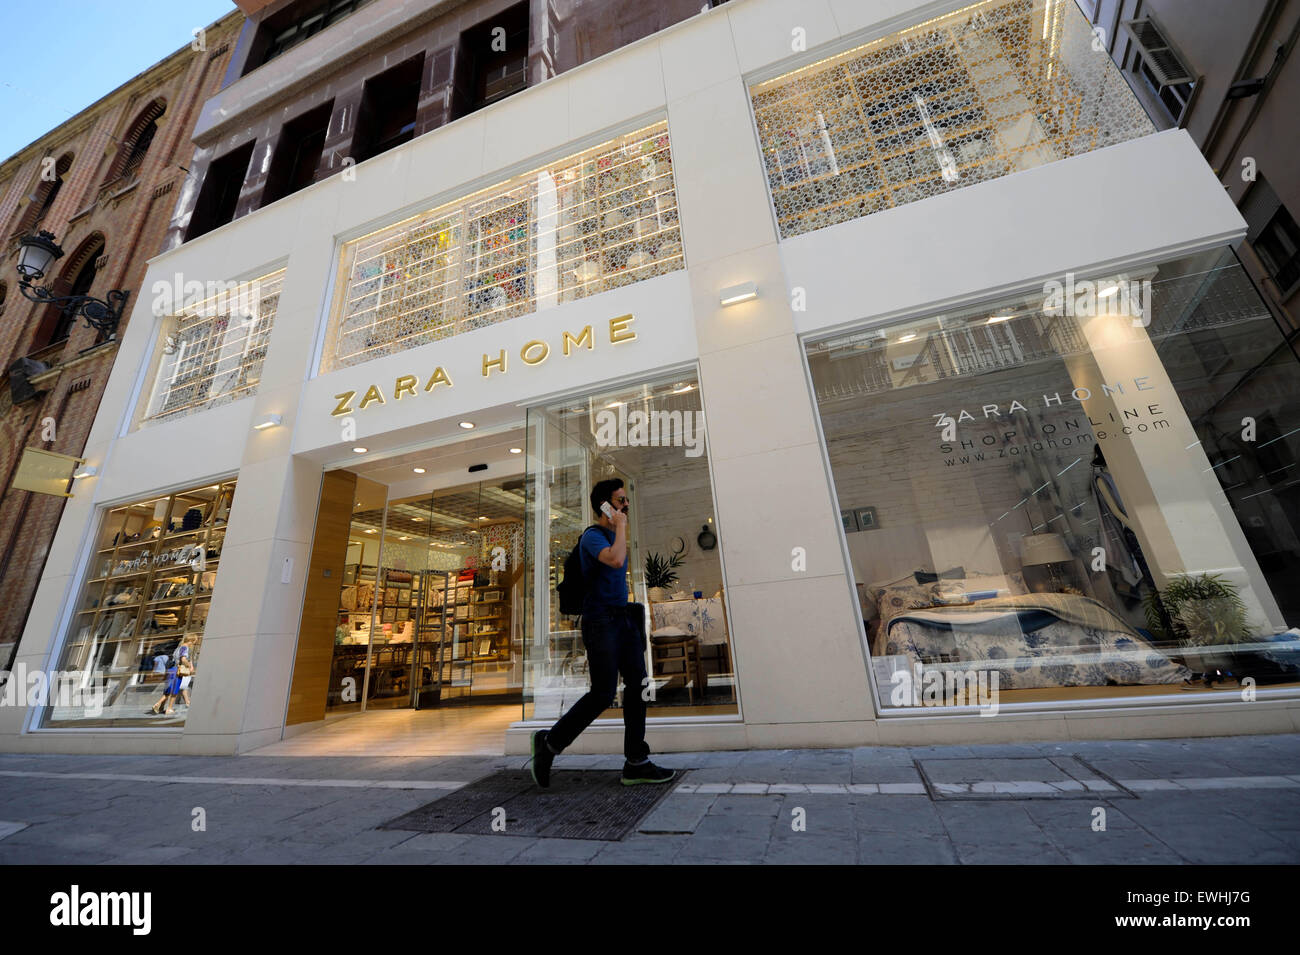 Zara home store in the main center of the old town in m laga spain stock phot - Zara home la madeleine ...